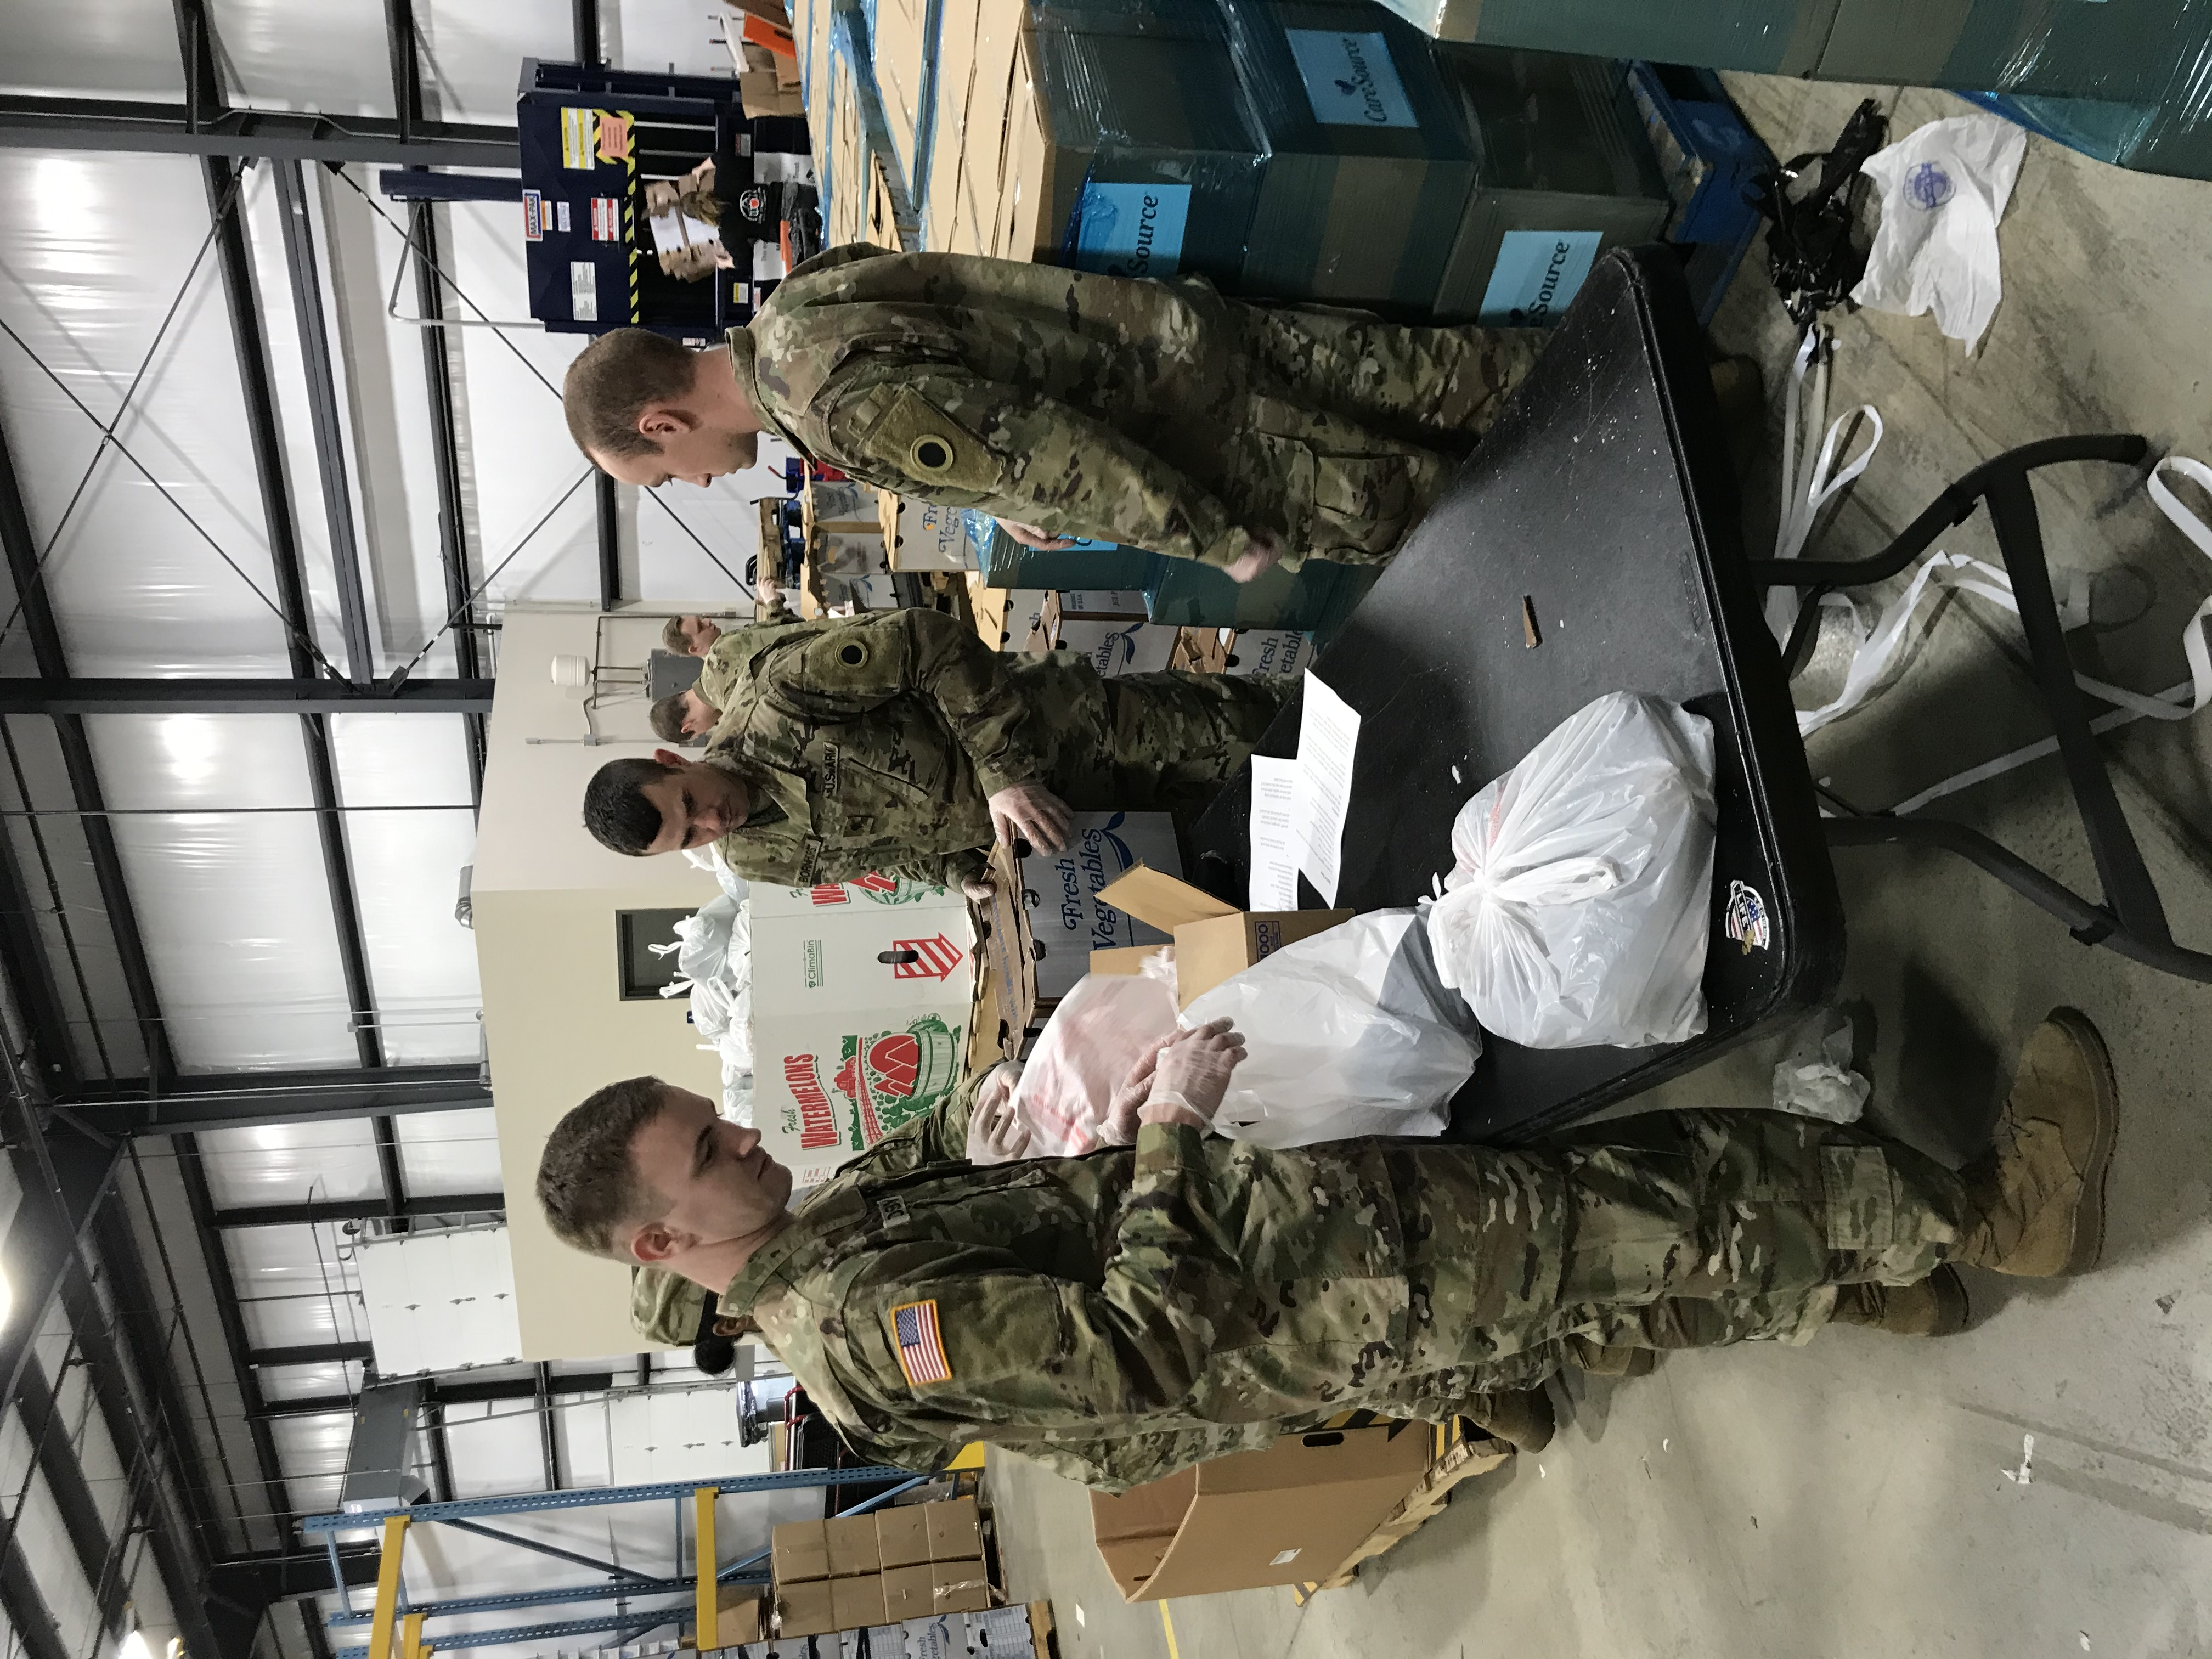 Soldiers package produse at table inside warehouse.